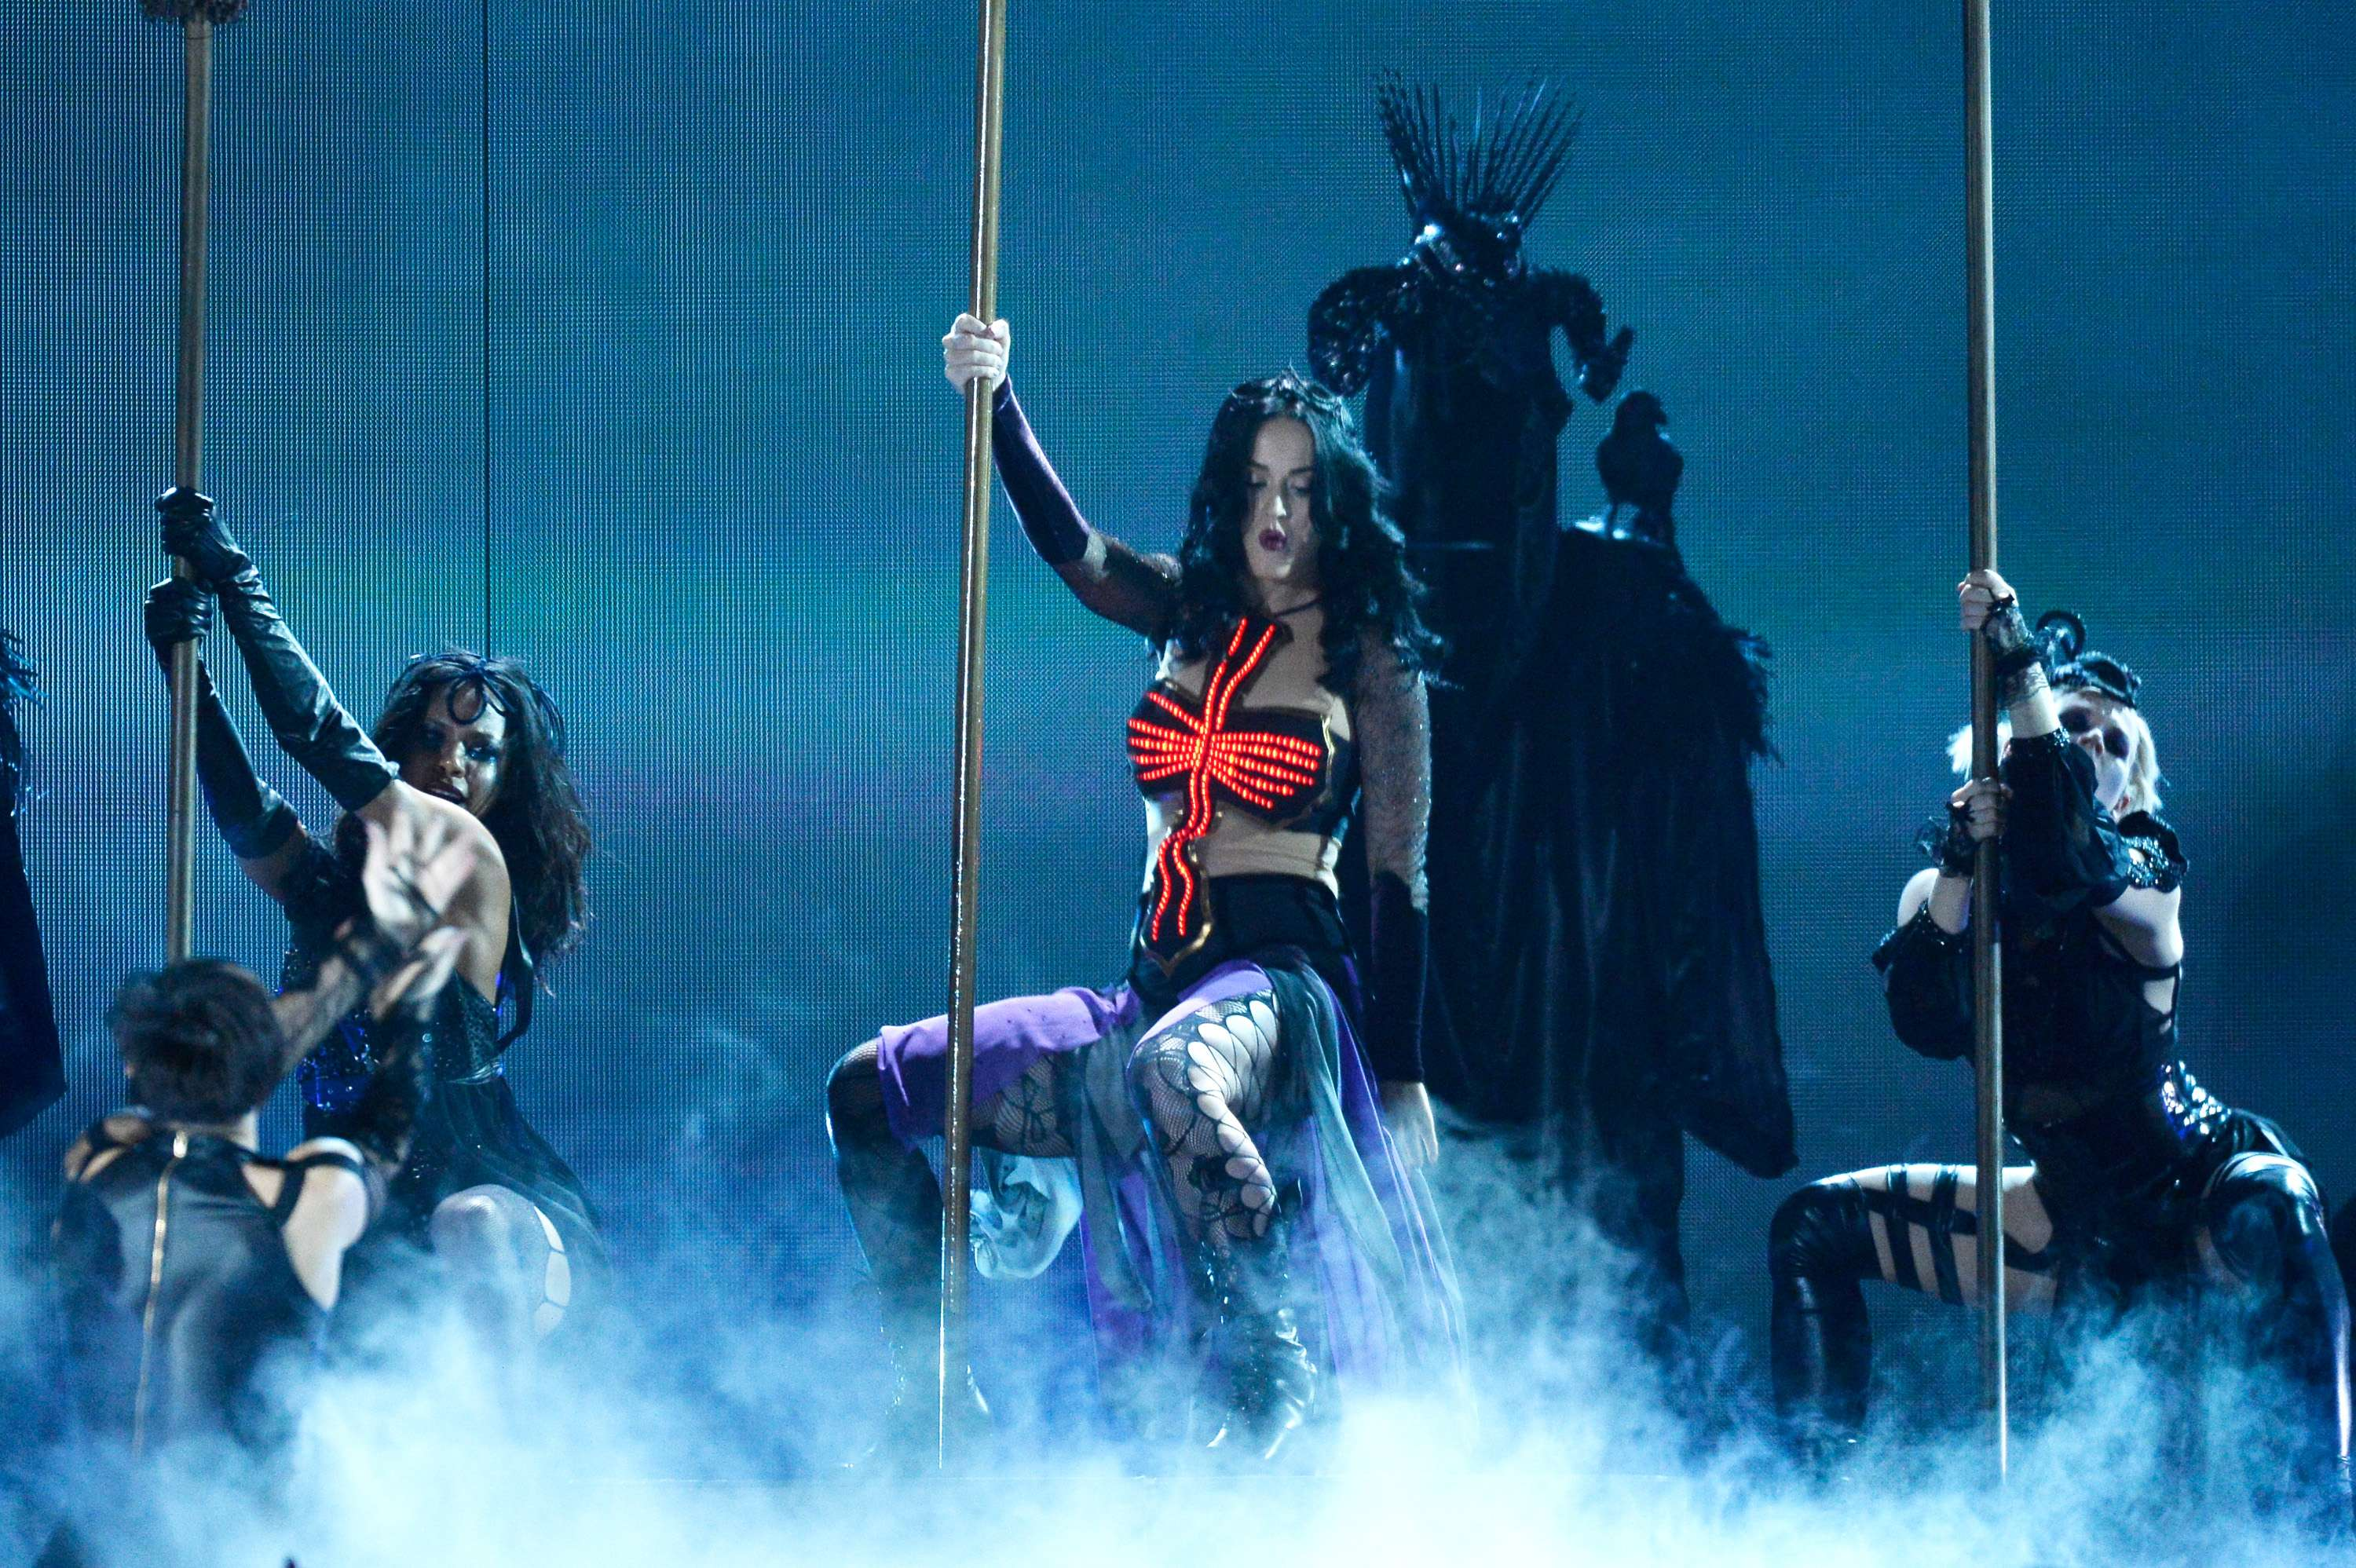 El espantoso pole dance de Katy Perry en los Grammy 2014